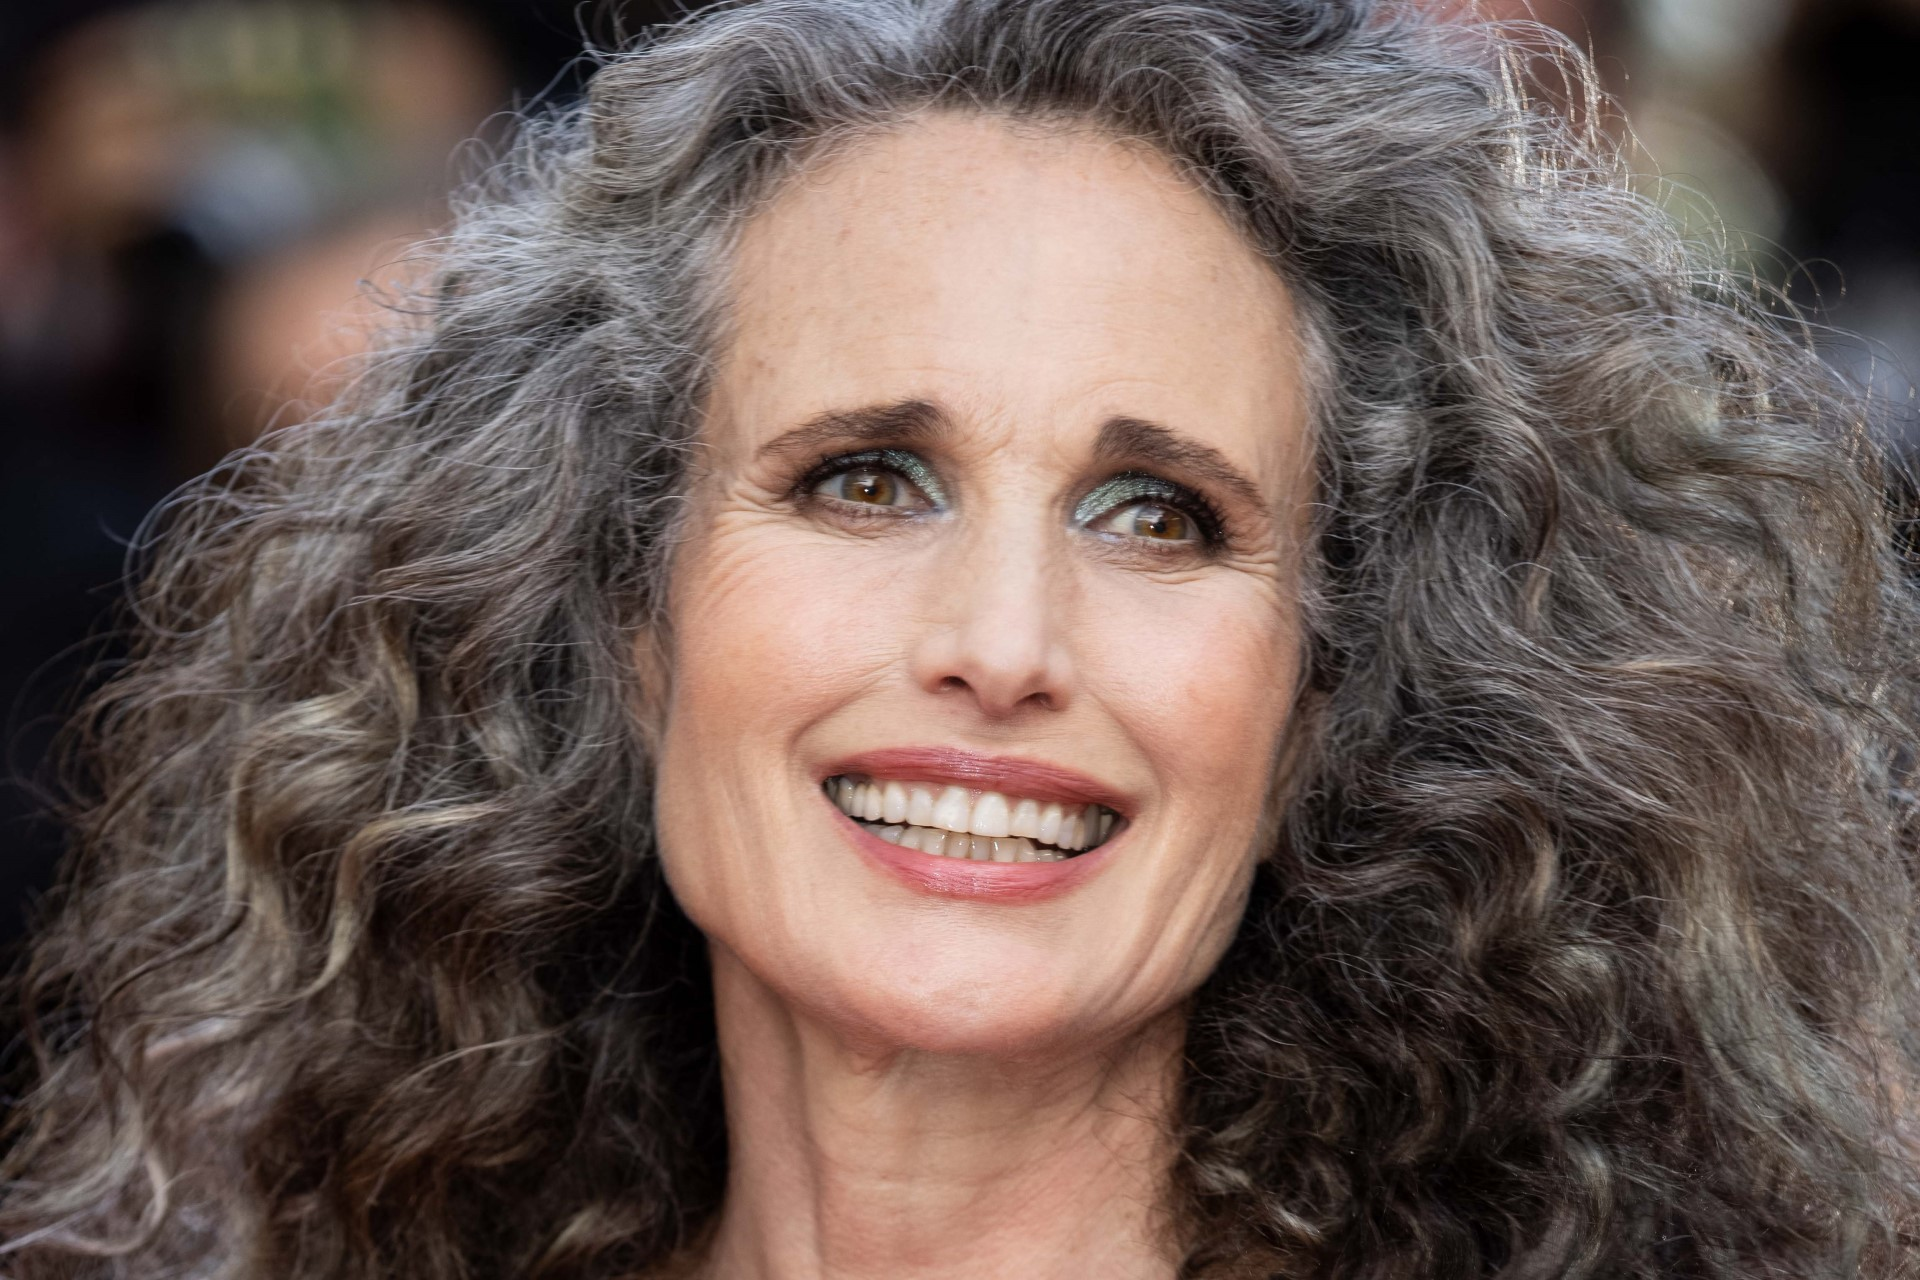 What's Andie MacDowell doing these days?